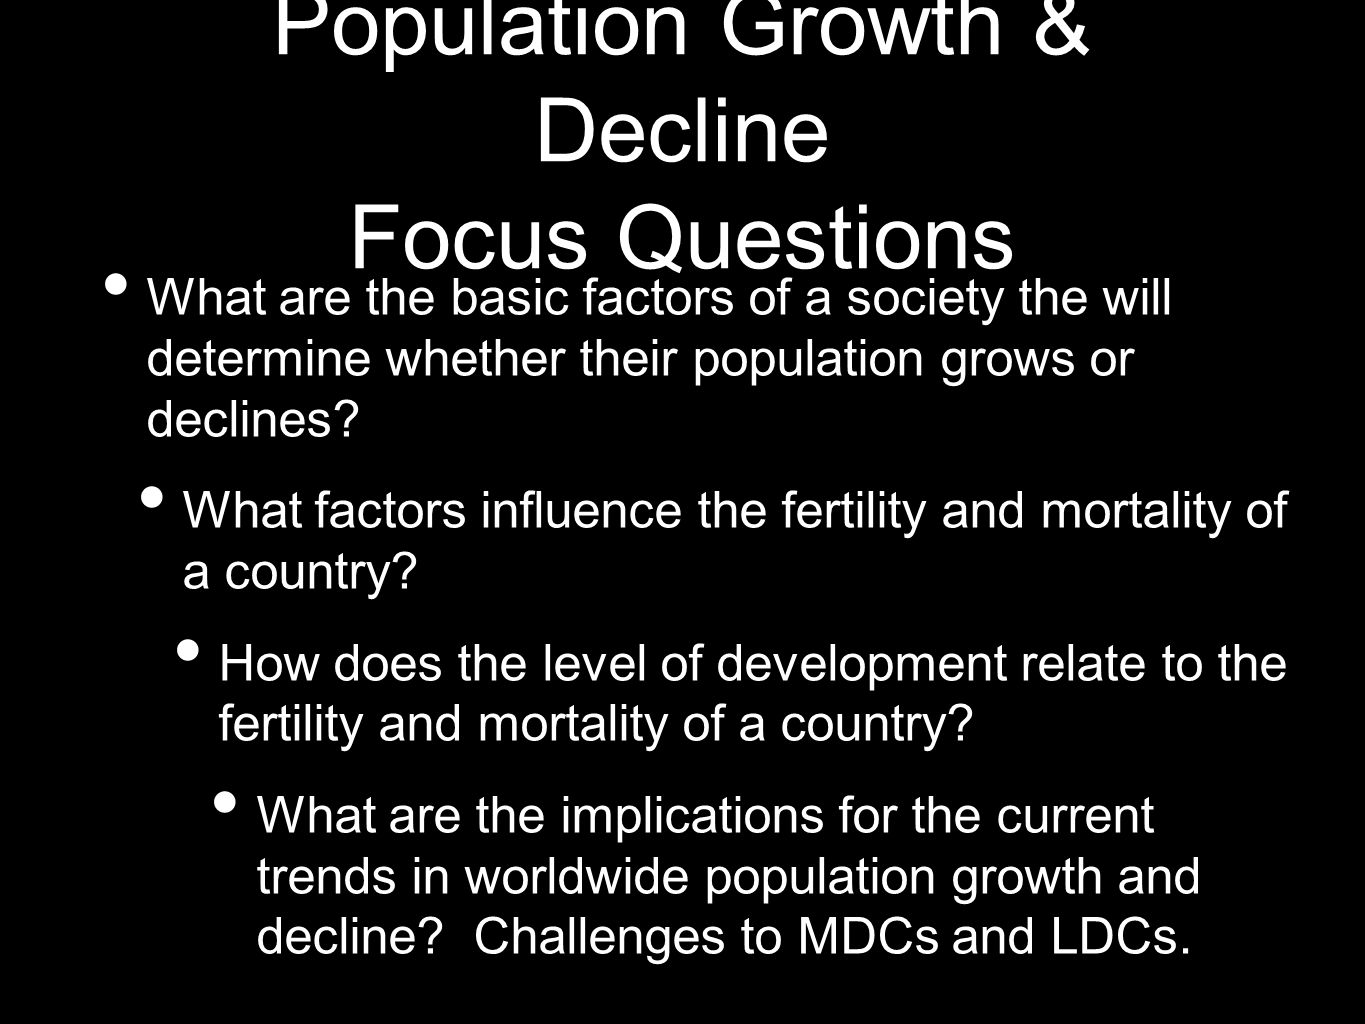 Population Growth & Decline Focus Questions